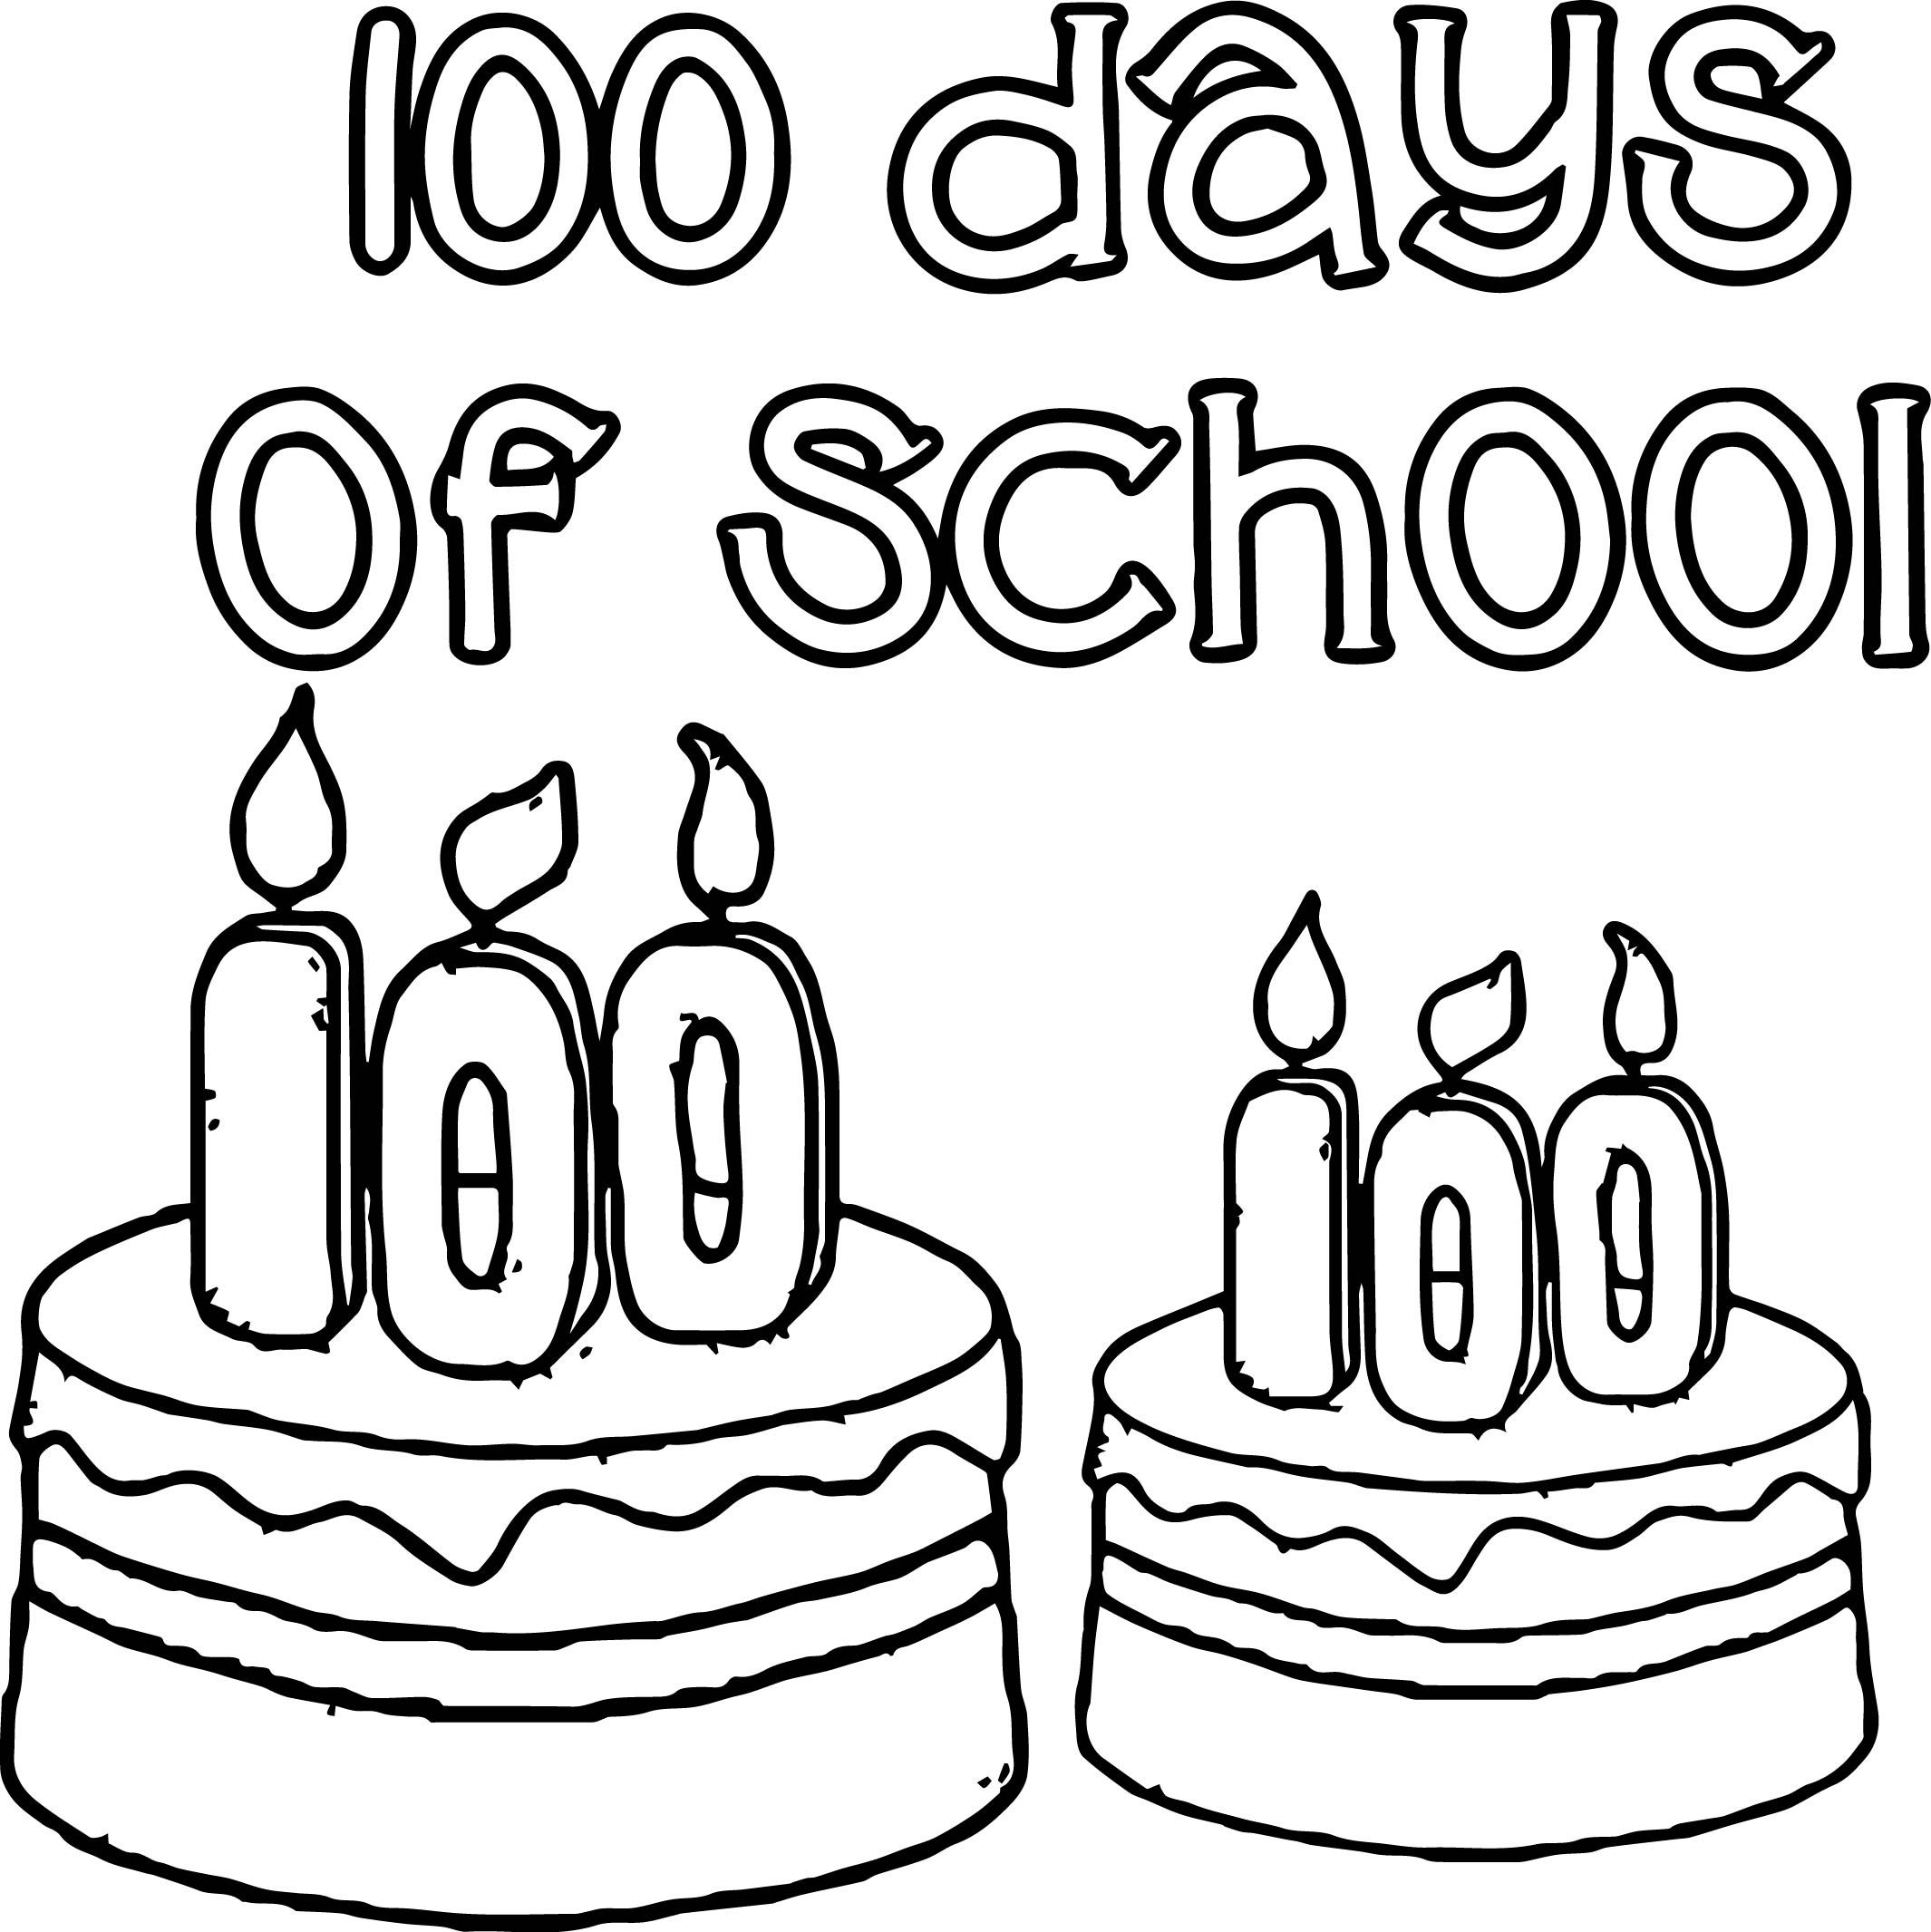 Awesome 100 Days Of School Birthday Coloring Page Birthday